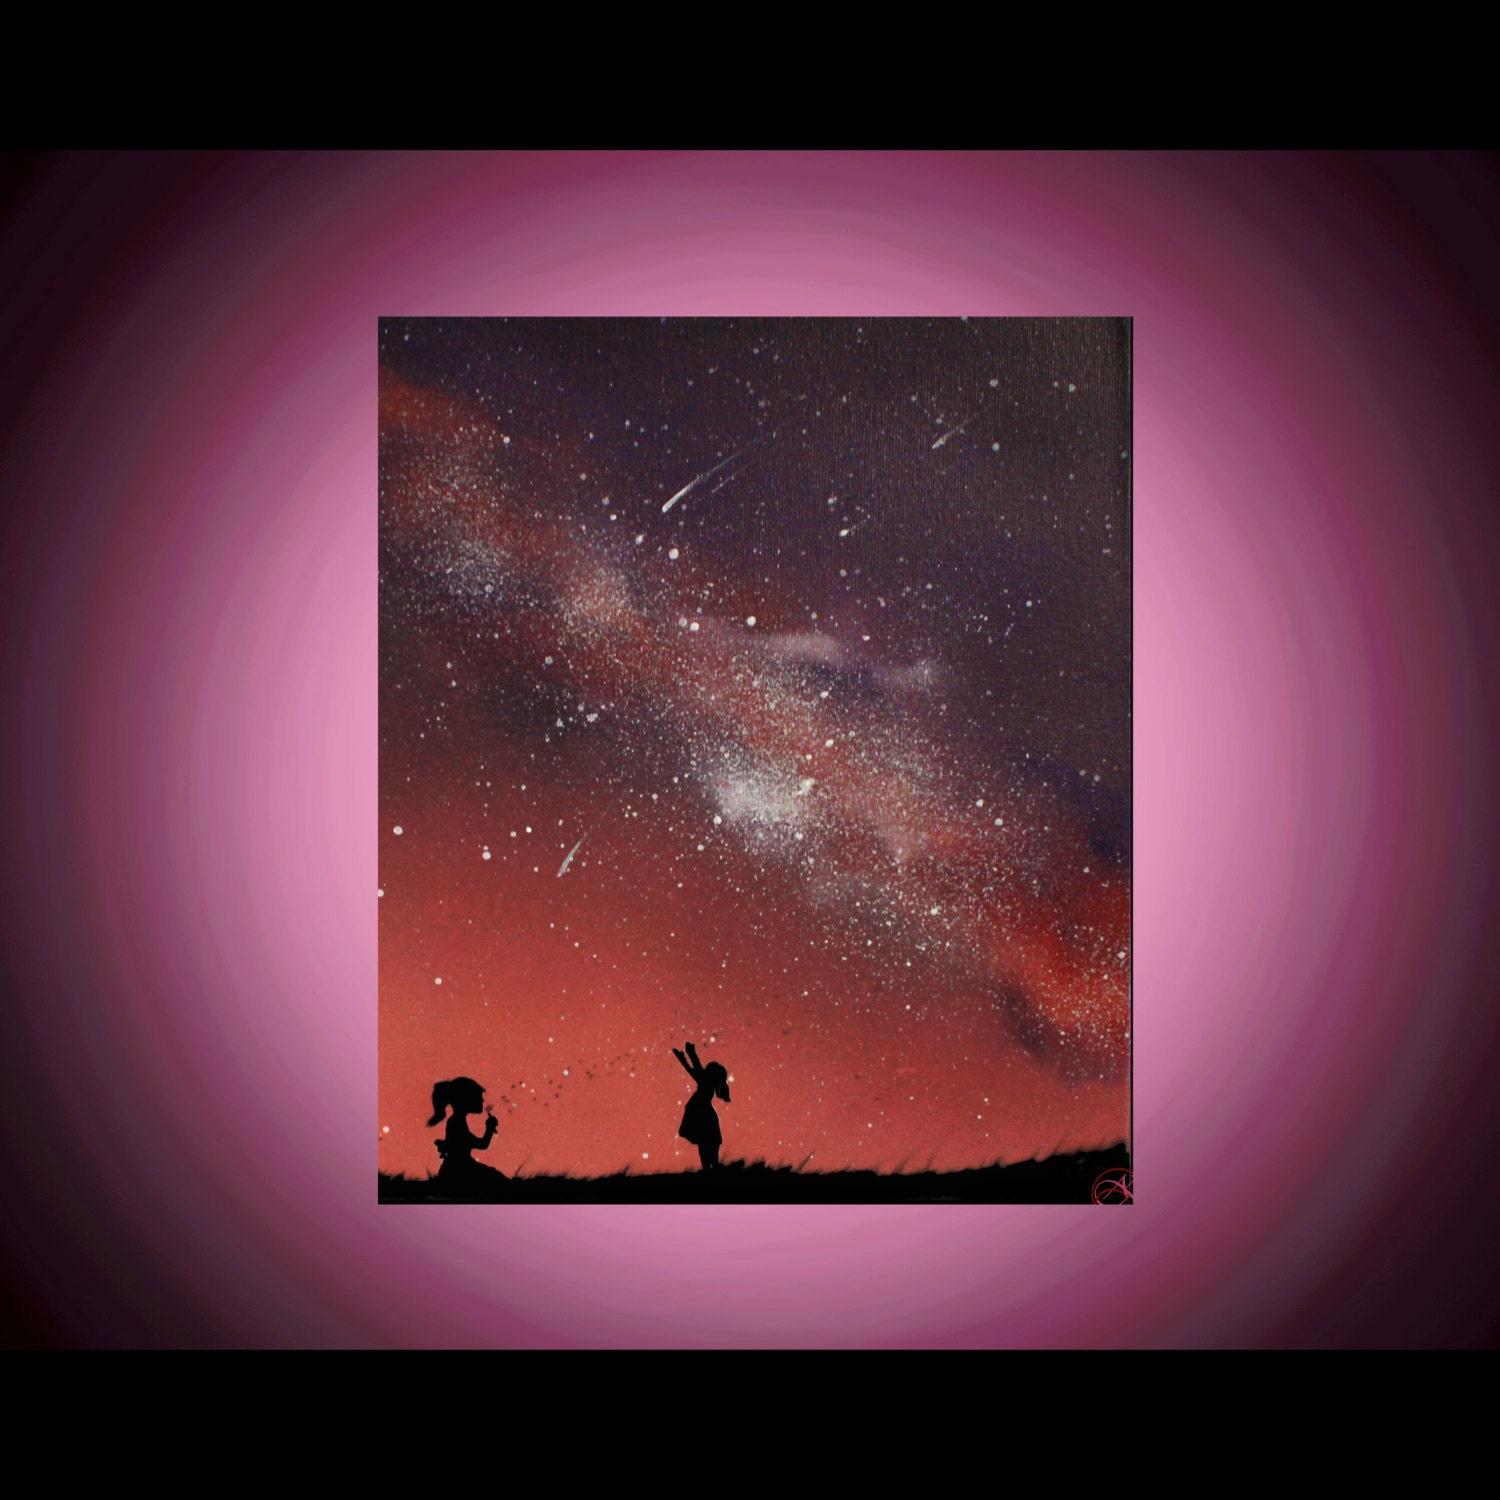 space art children playing paintings on canvas space art. Black Bedroom Furniture Sets. Home Design Ideas